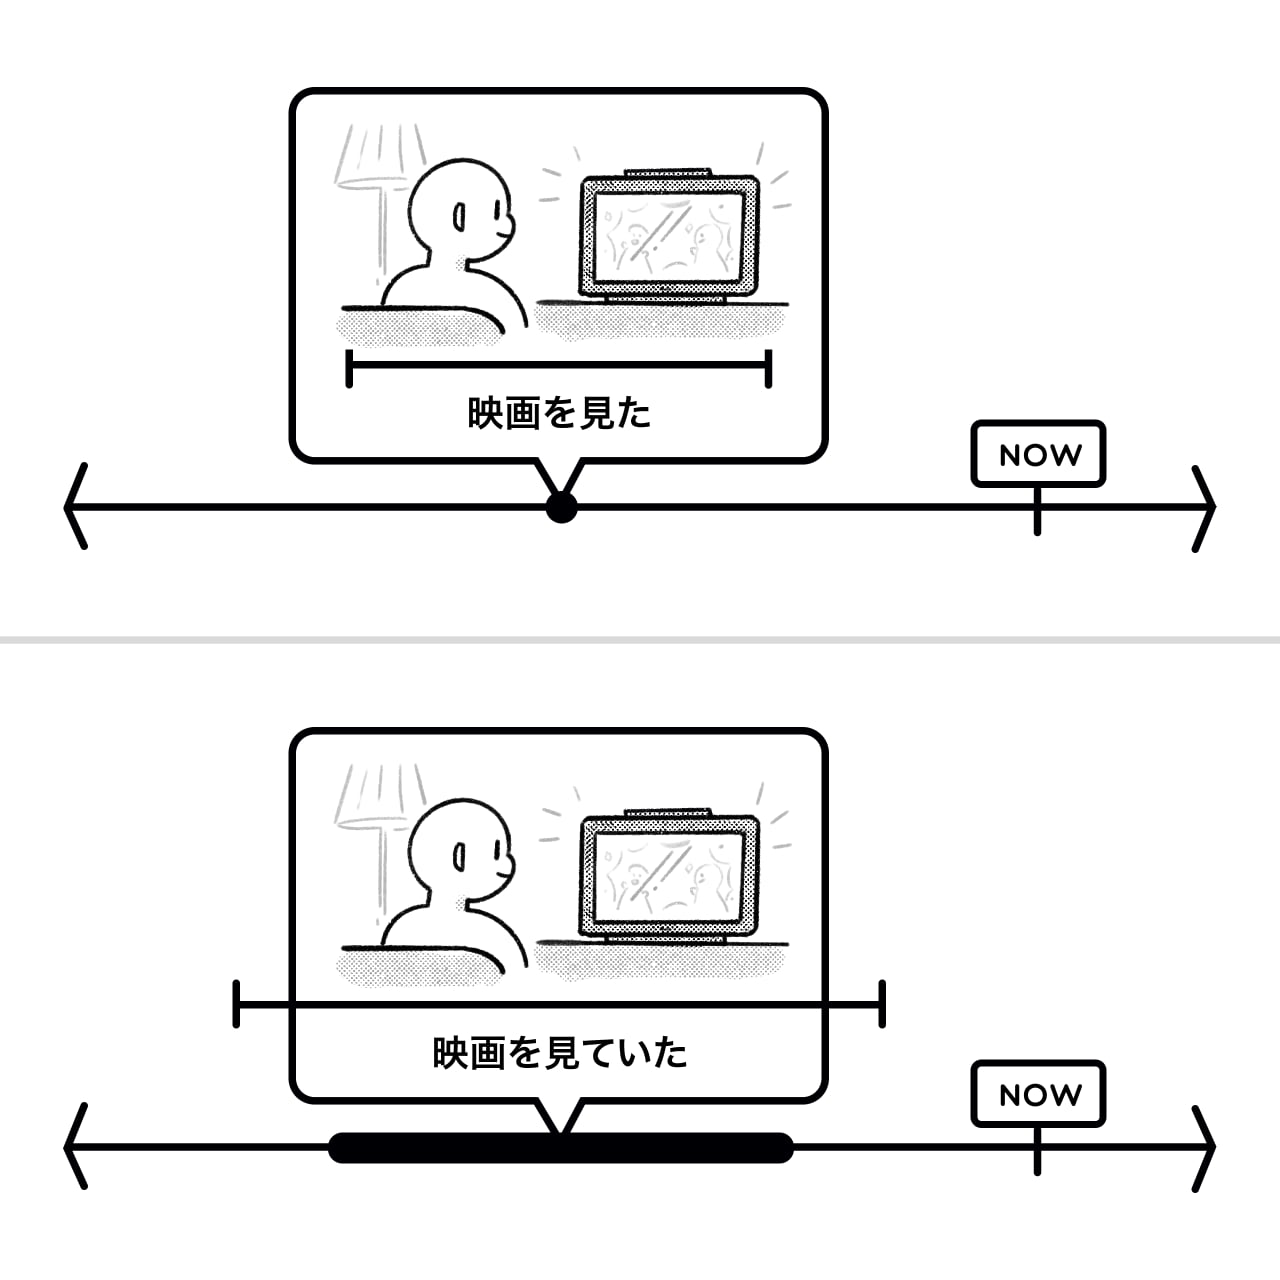 timelines showing the differences between 見た and 見ていた